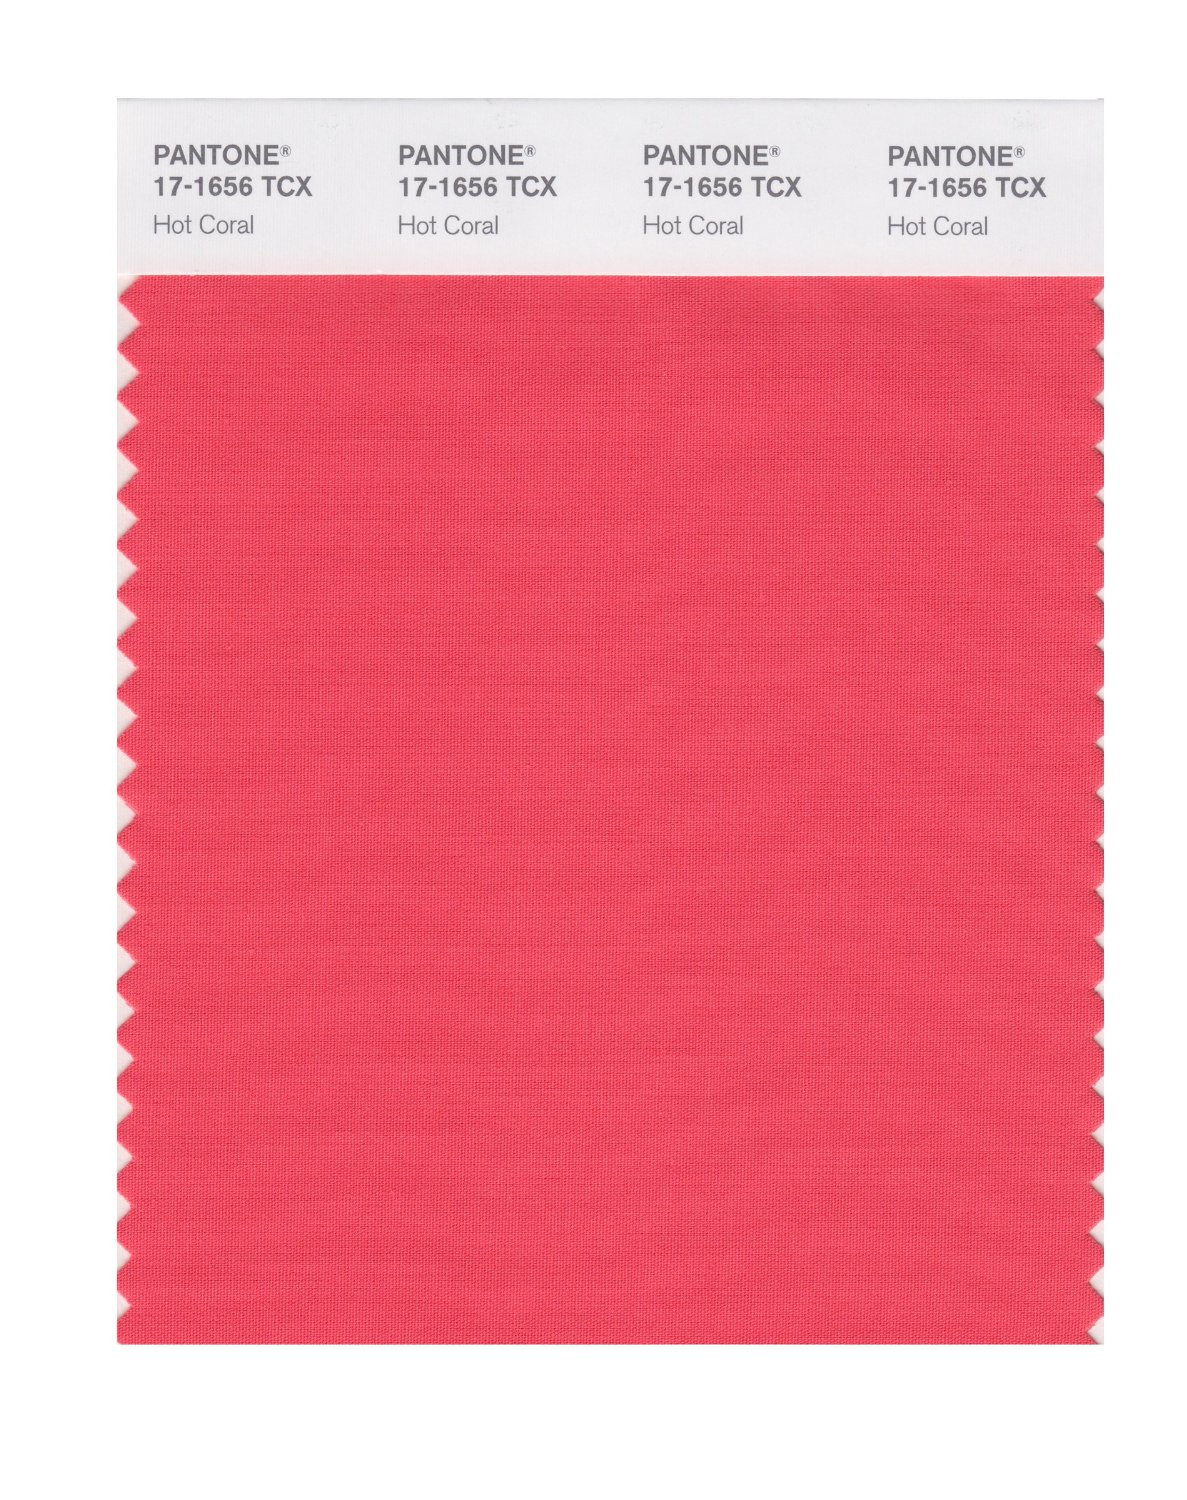 Pantone Smart Swatch 17-1656 Hot Coral